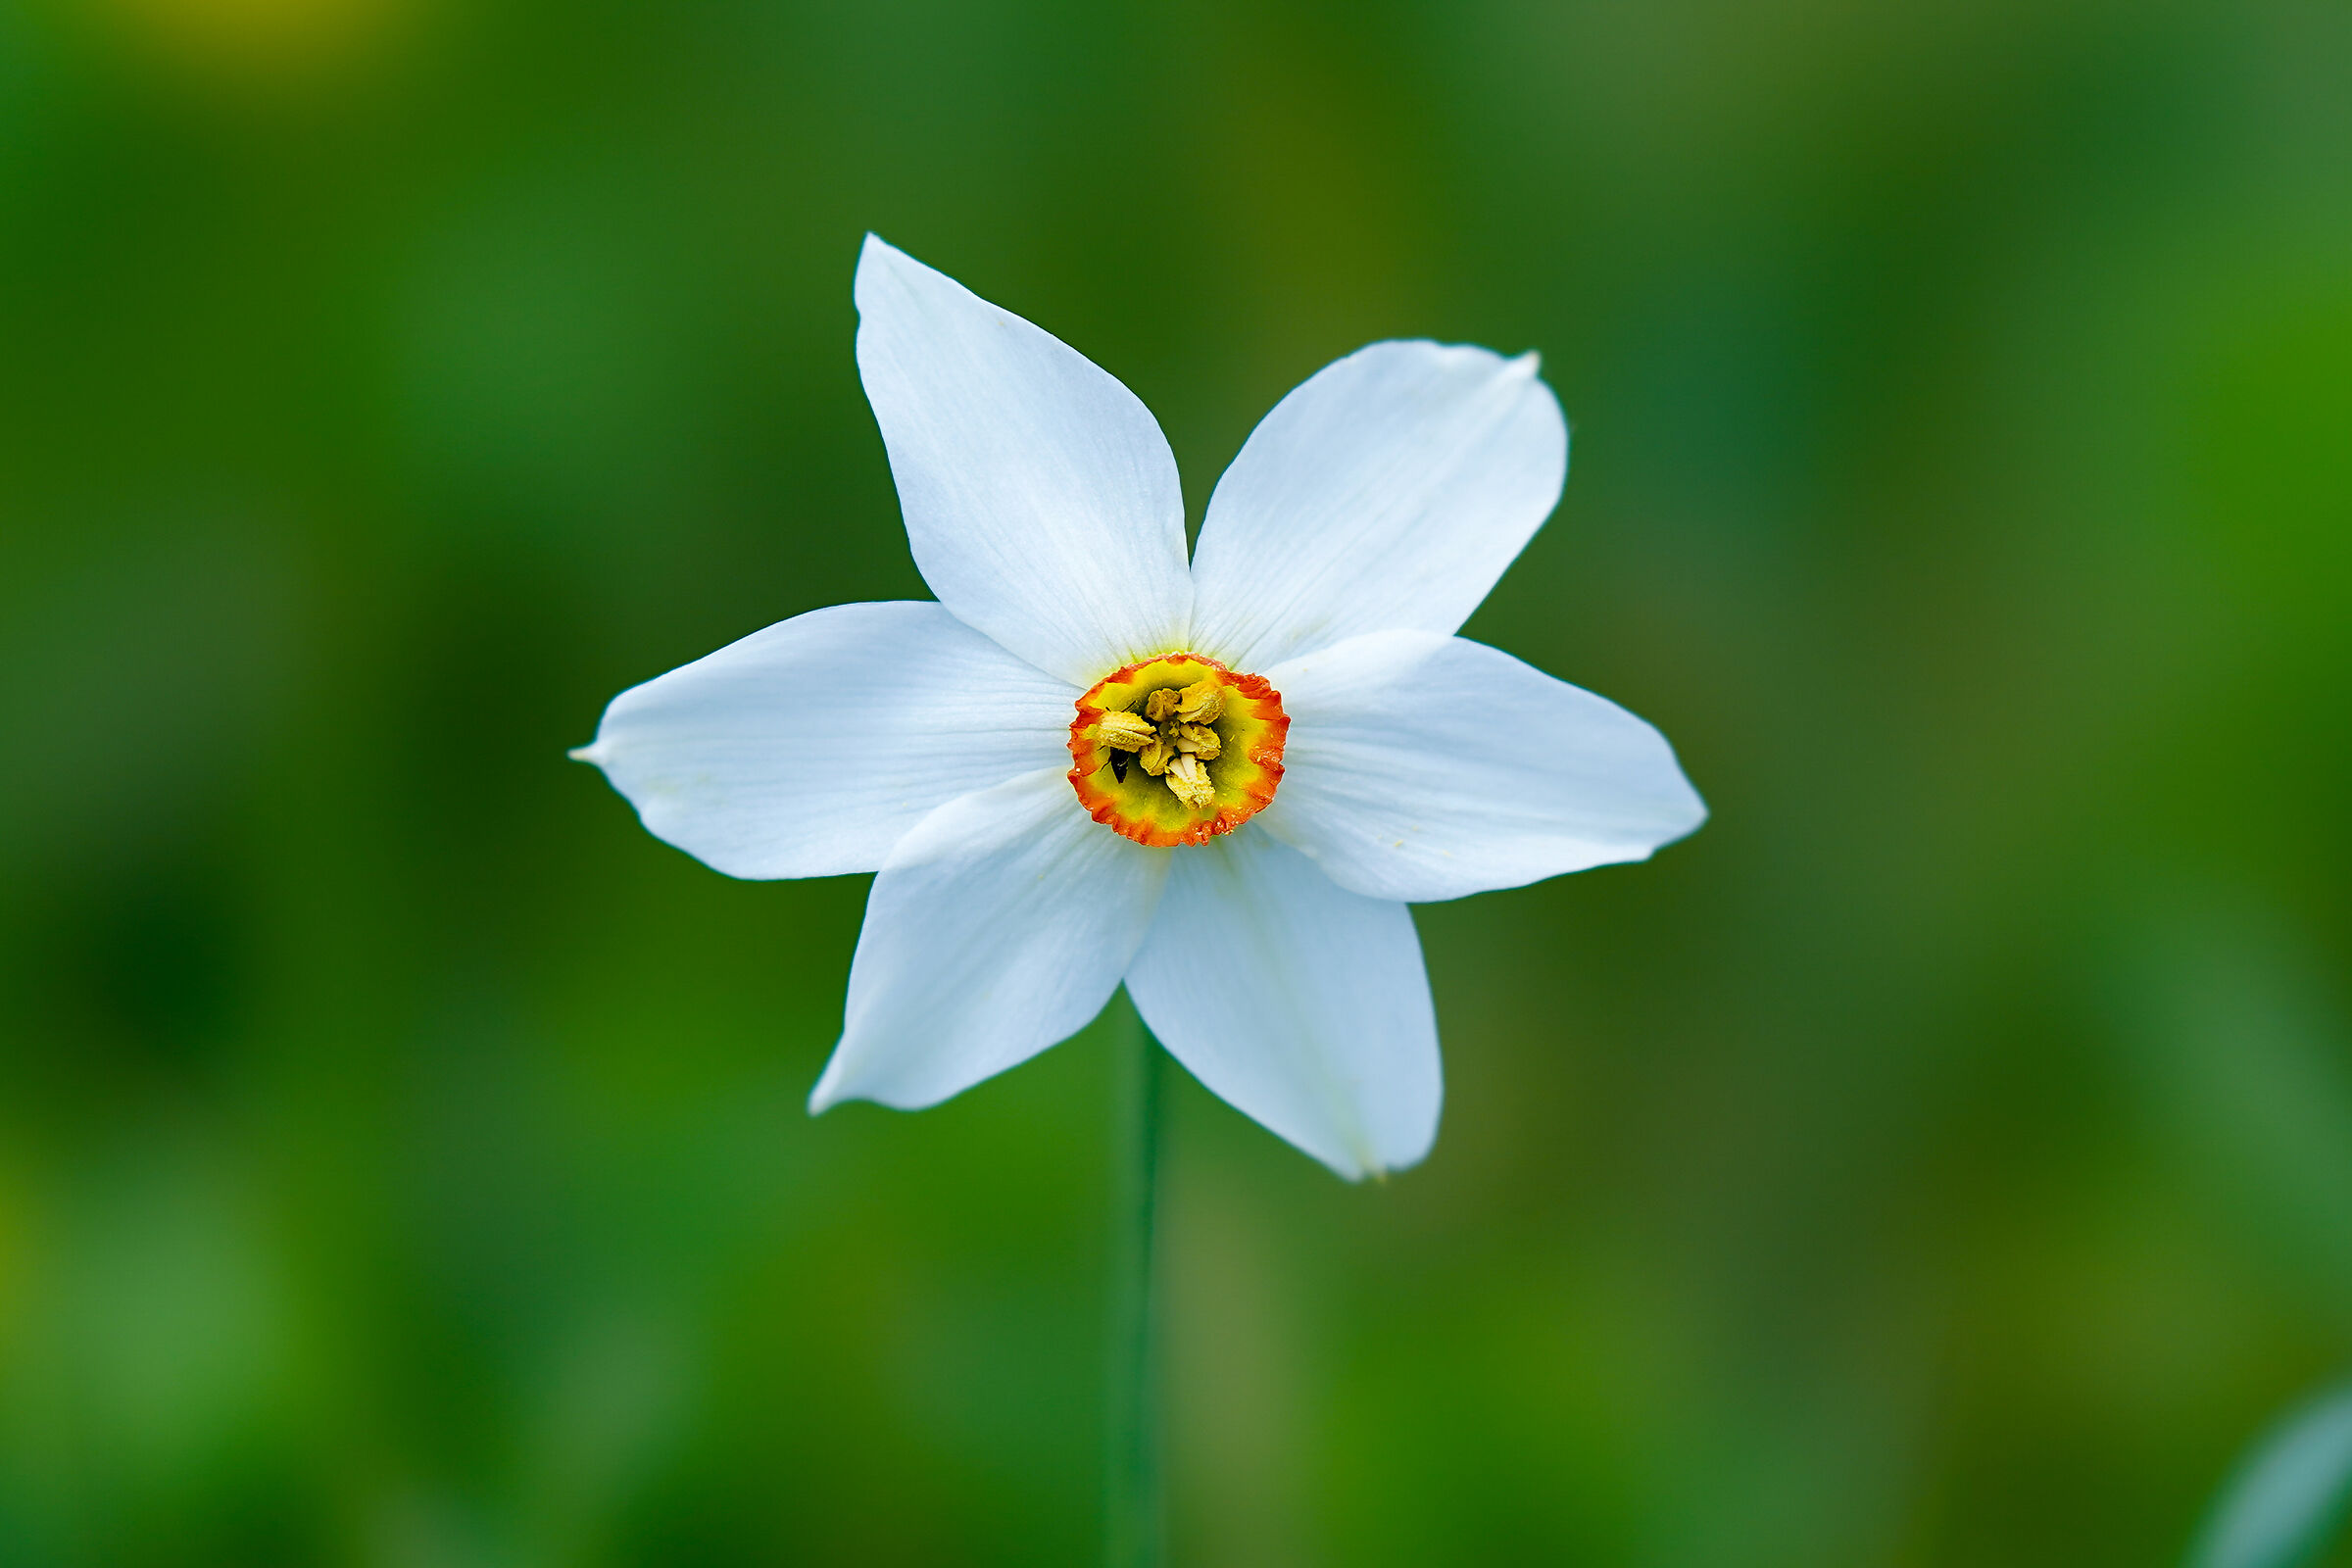 The simple beauty of a Narcissus...